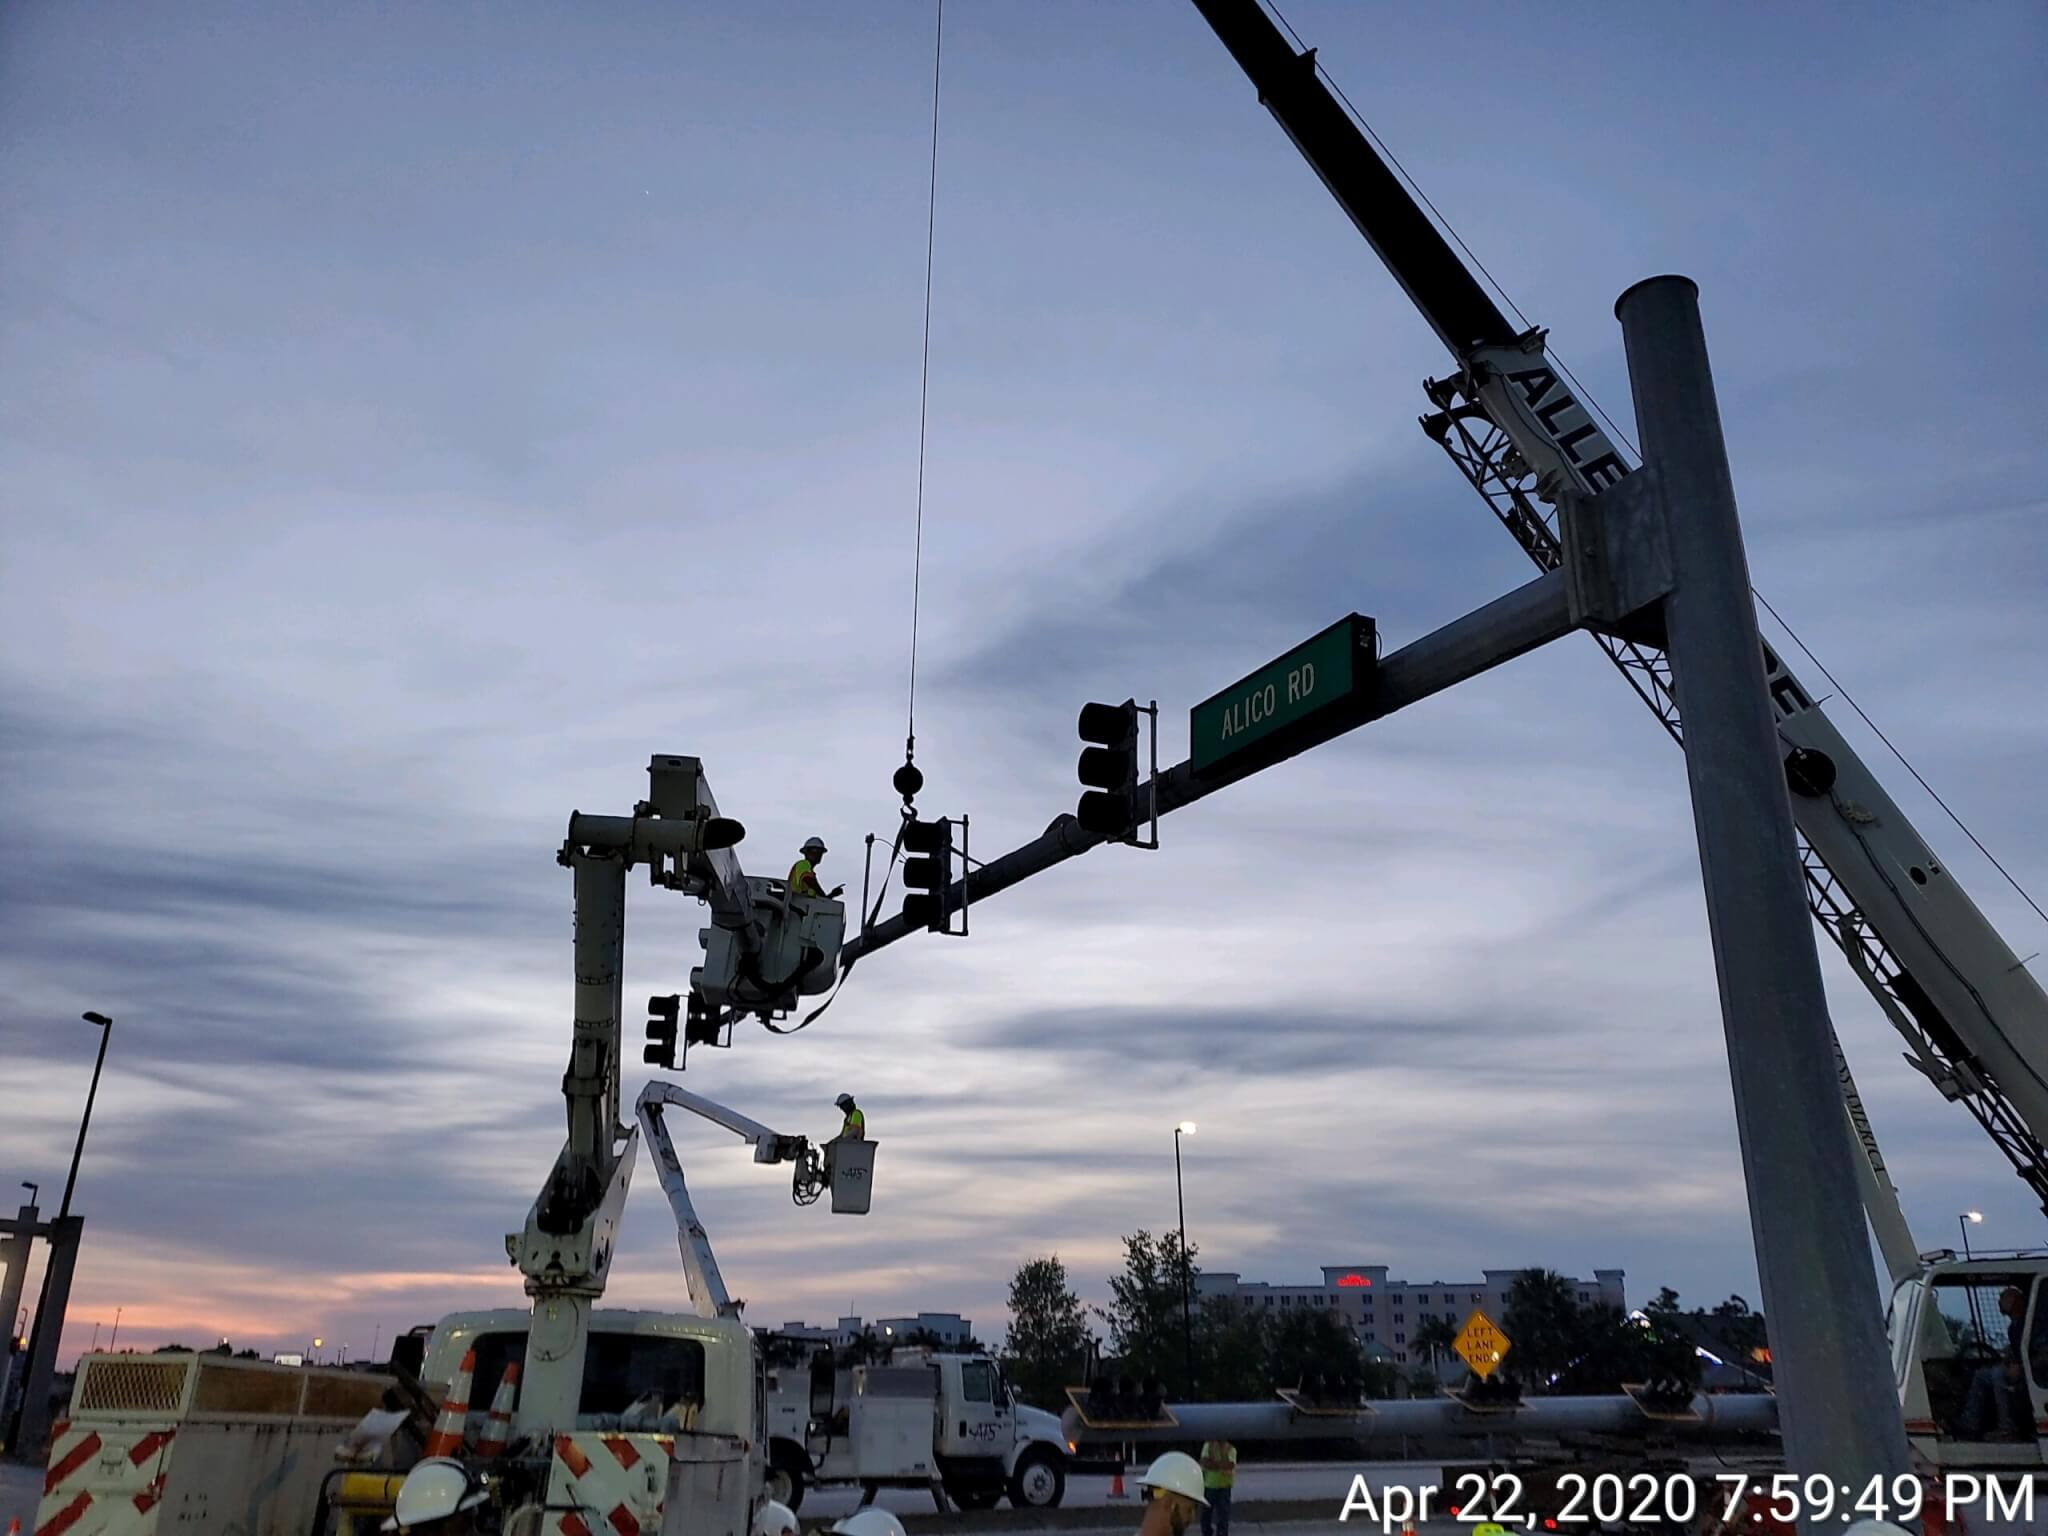 Alico Road at Ben Hill Griffin Parkway Mast Arm Design